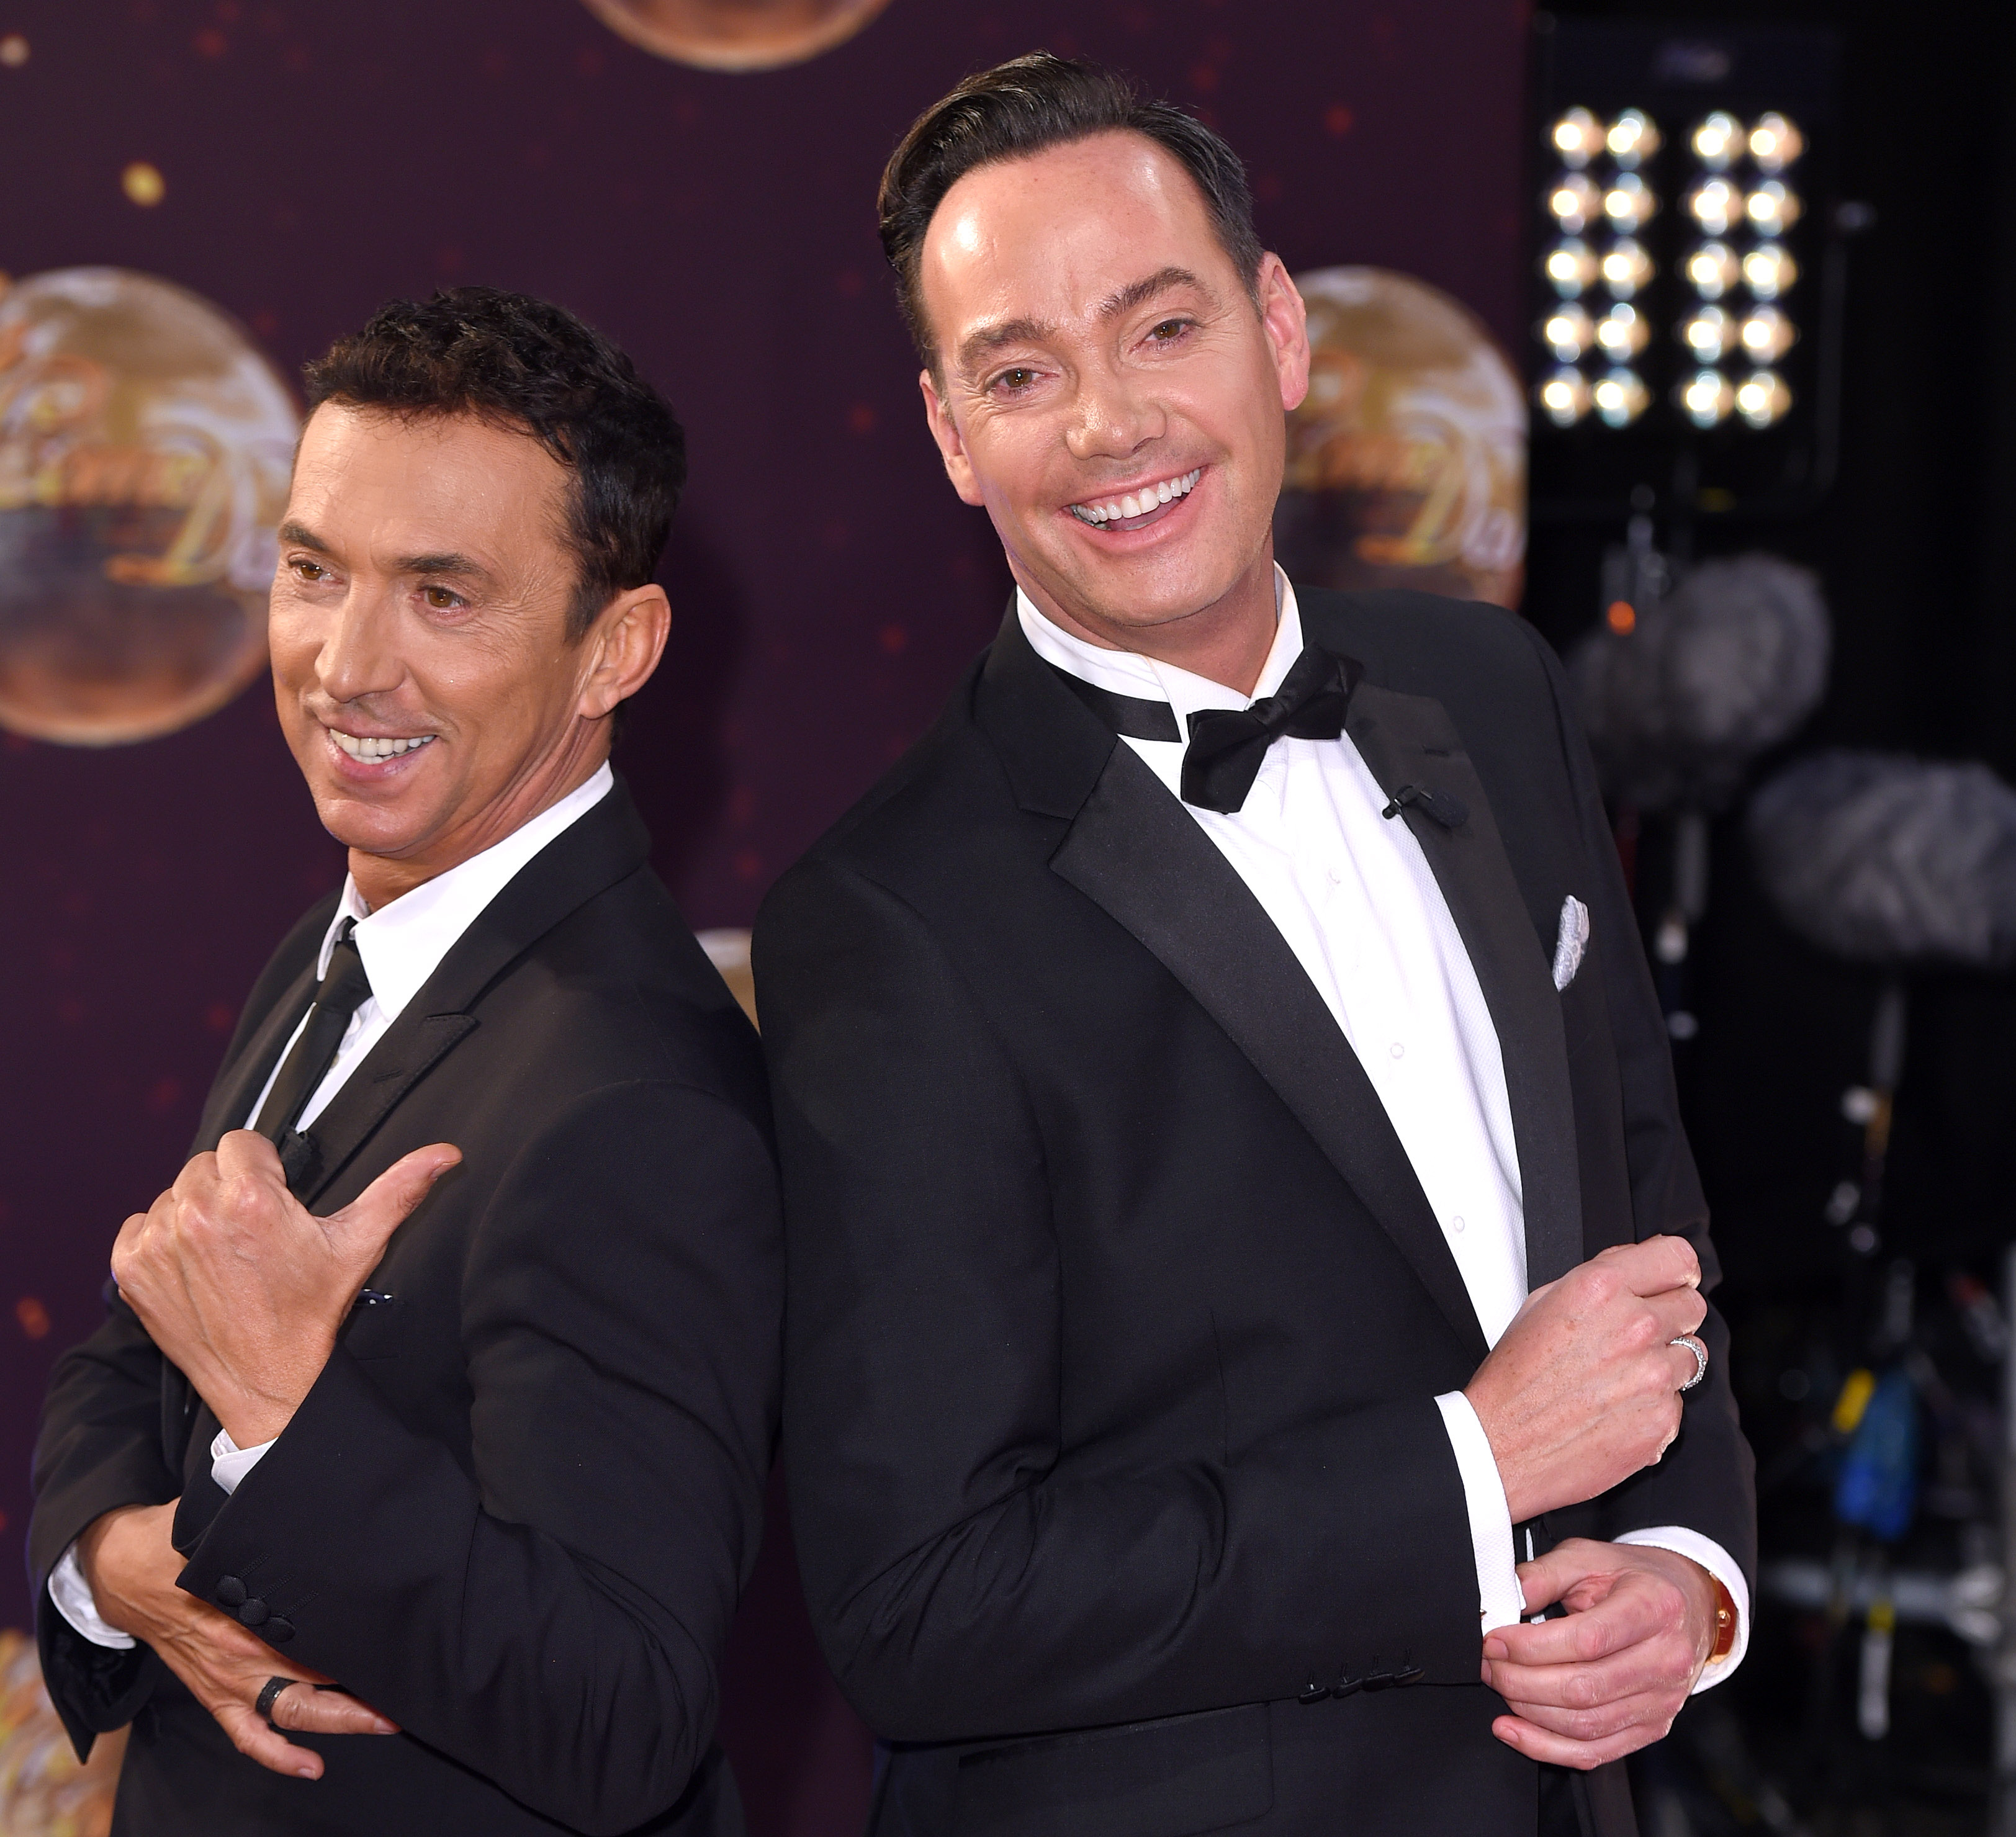 """BOREHAMWOOD, ENGLAND - SEPTEMBER 01: Bruno Tonioli and Craig Revel Horwood attend the red carpet launch of """"Strictly Come Dancing 2015"""" at Elstree Studios on September 1, 2015 in Borehamwood, England. (Photo by Karwai Tang/WireImage)"""